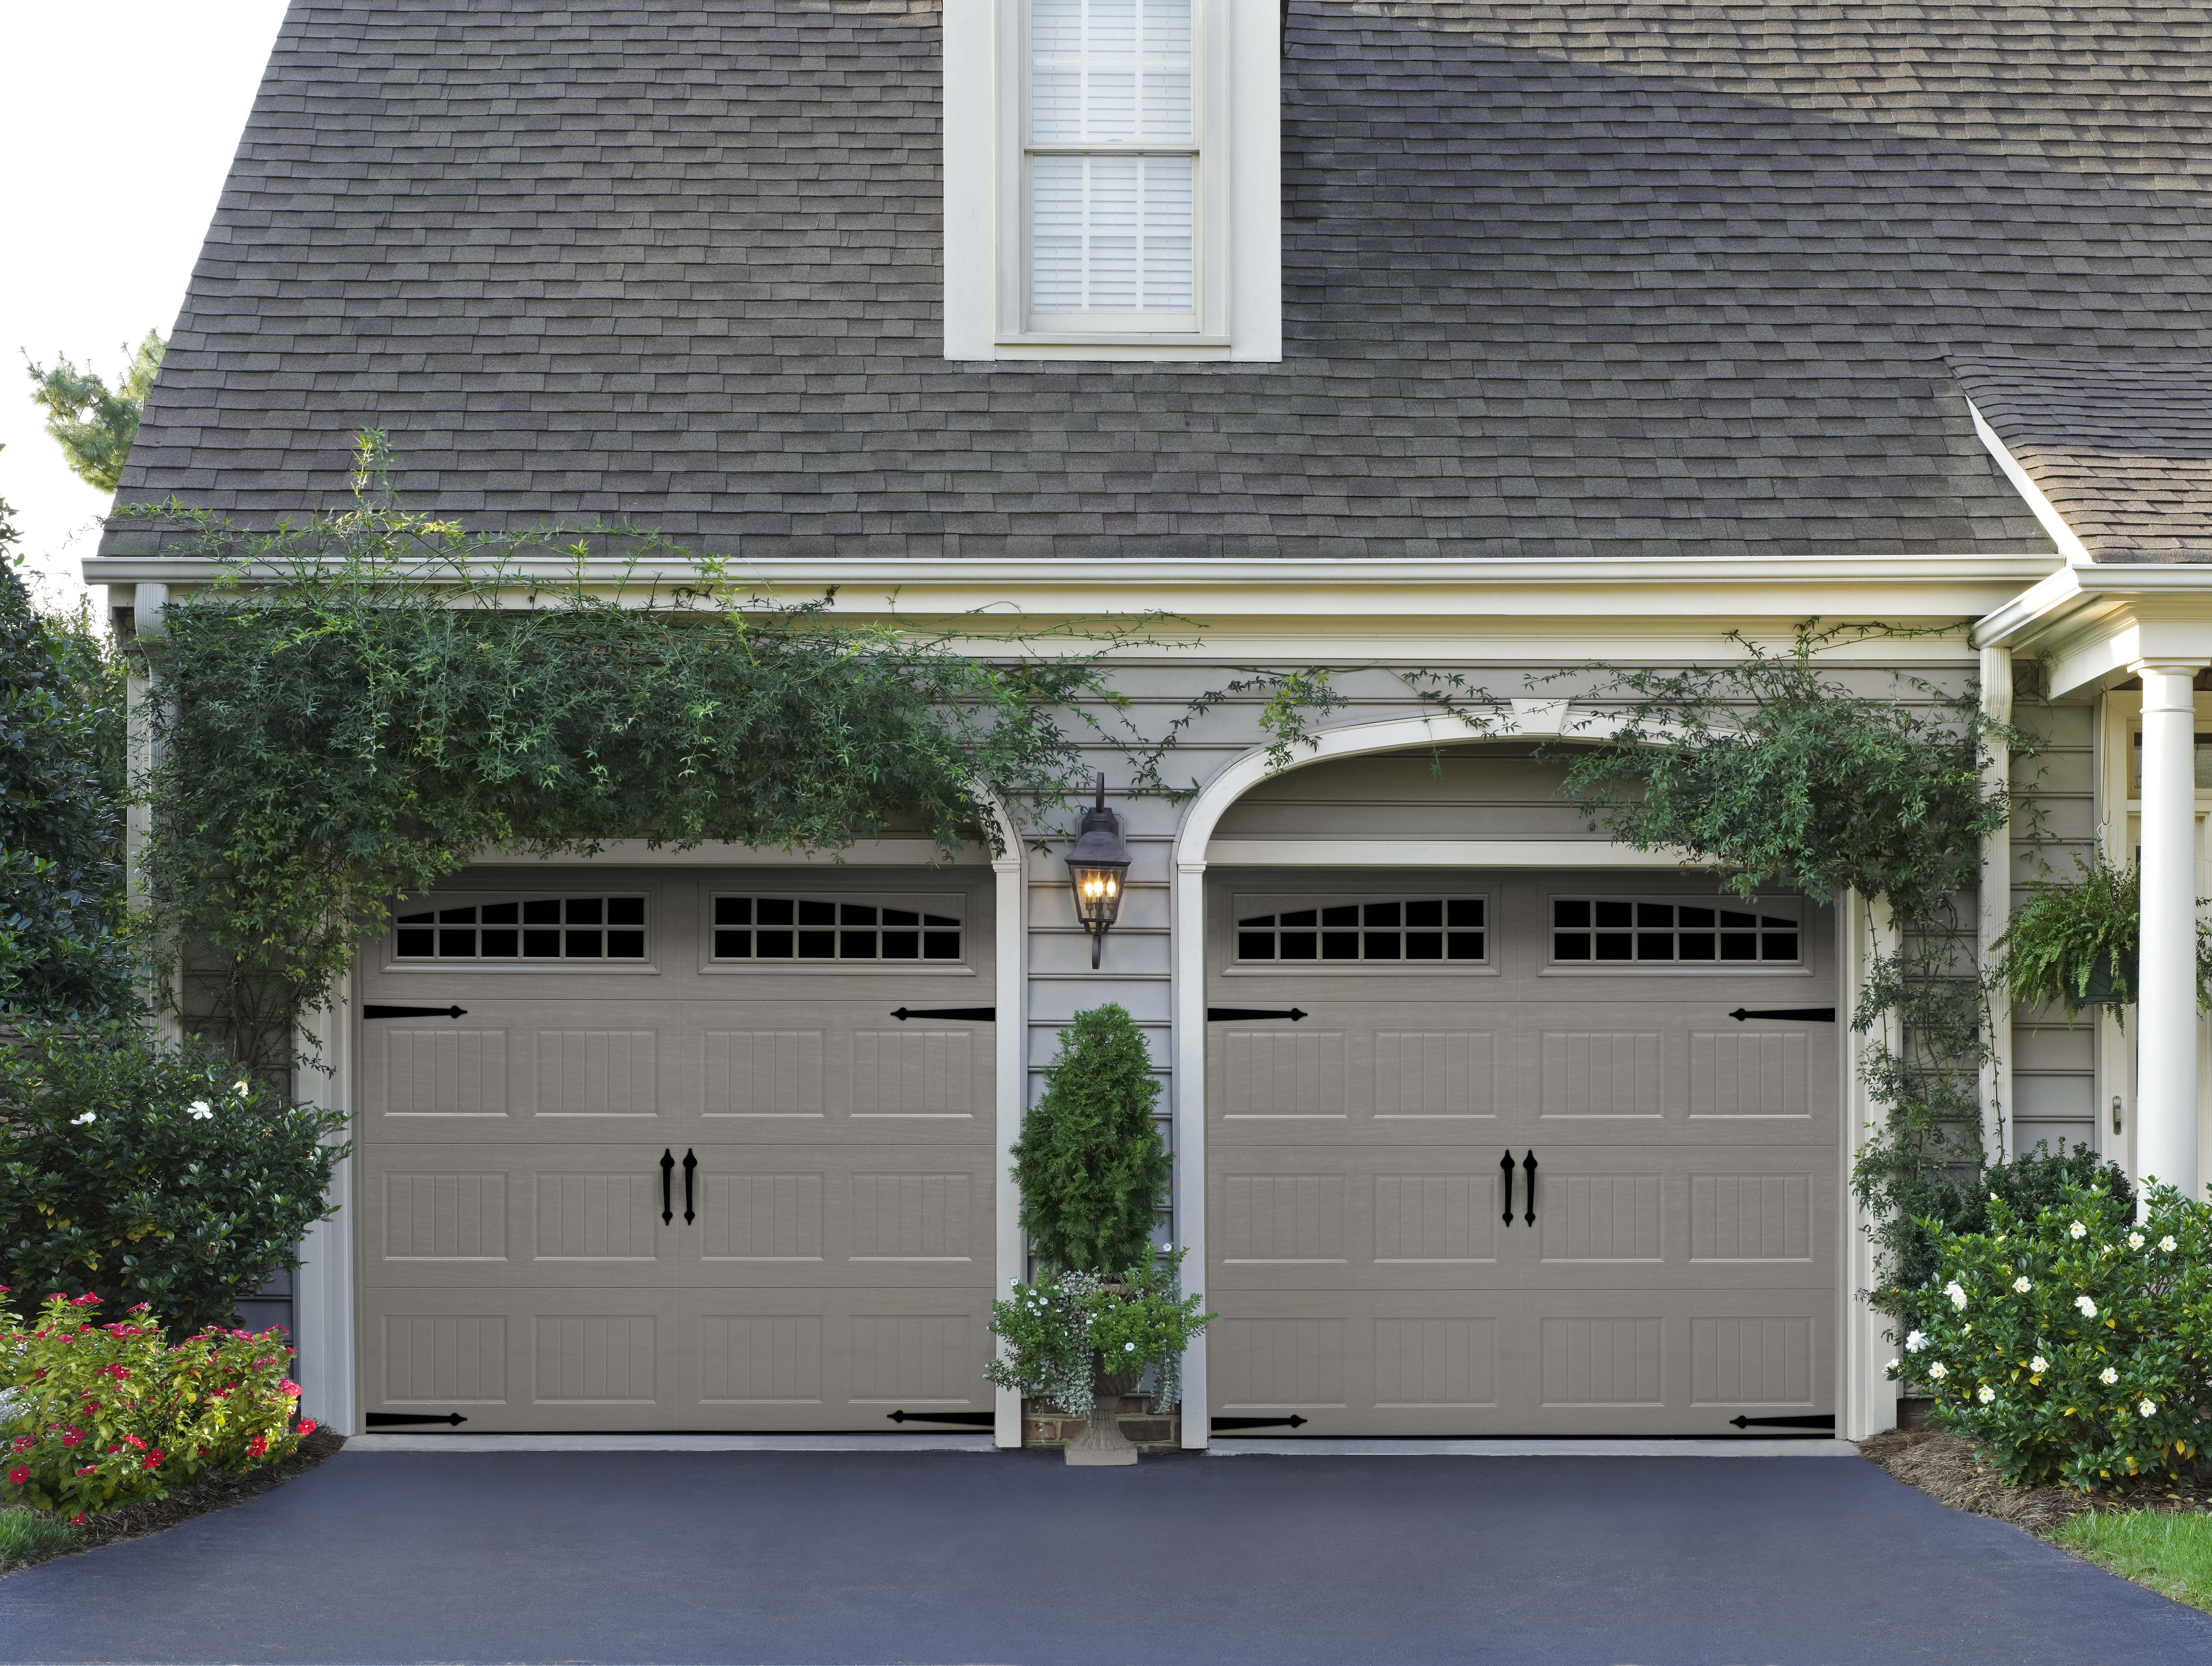 Classica northampton garage door white 9 x 8 no windows - Amarr Bead Board Panel Garage Door With Moonlite Decratrim And Optional Blue Ridge Handles And Strap